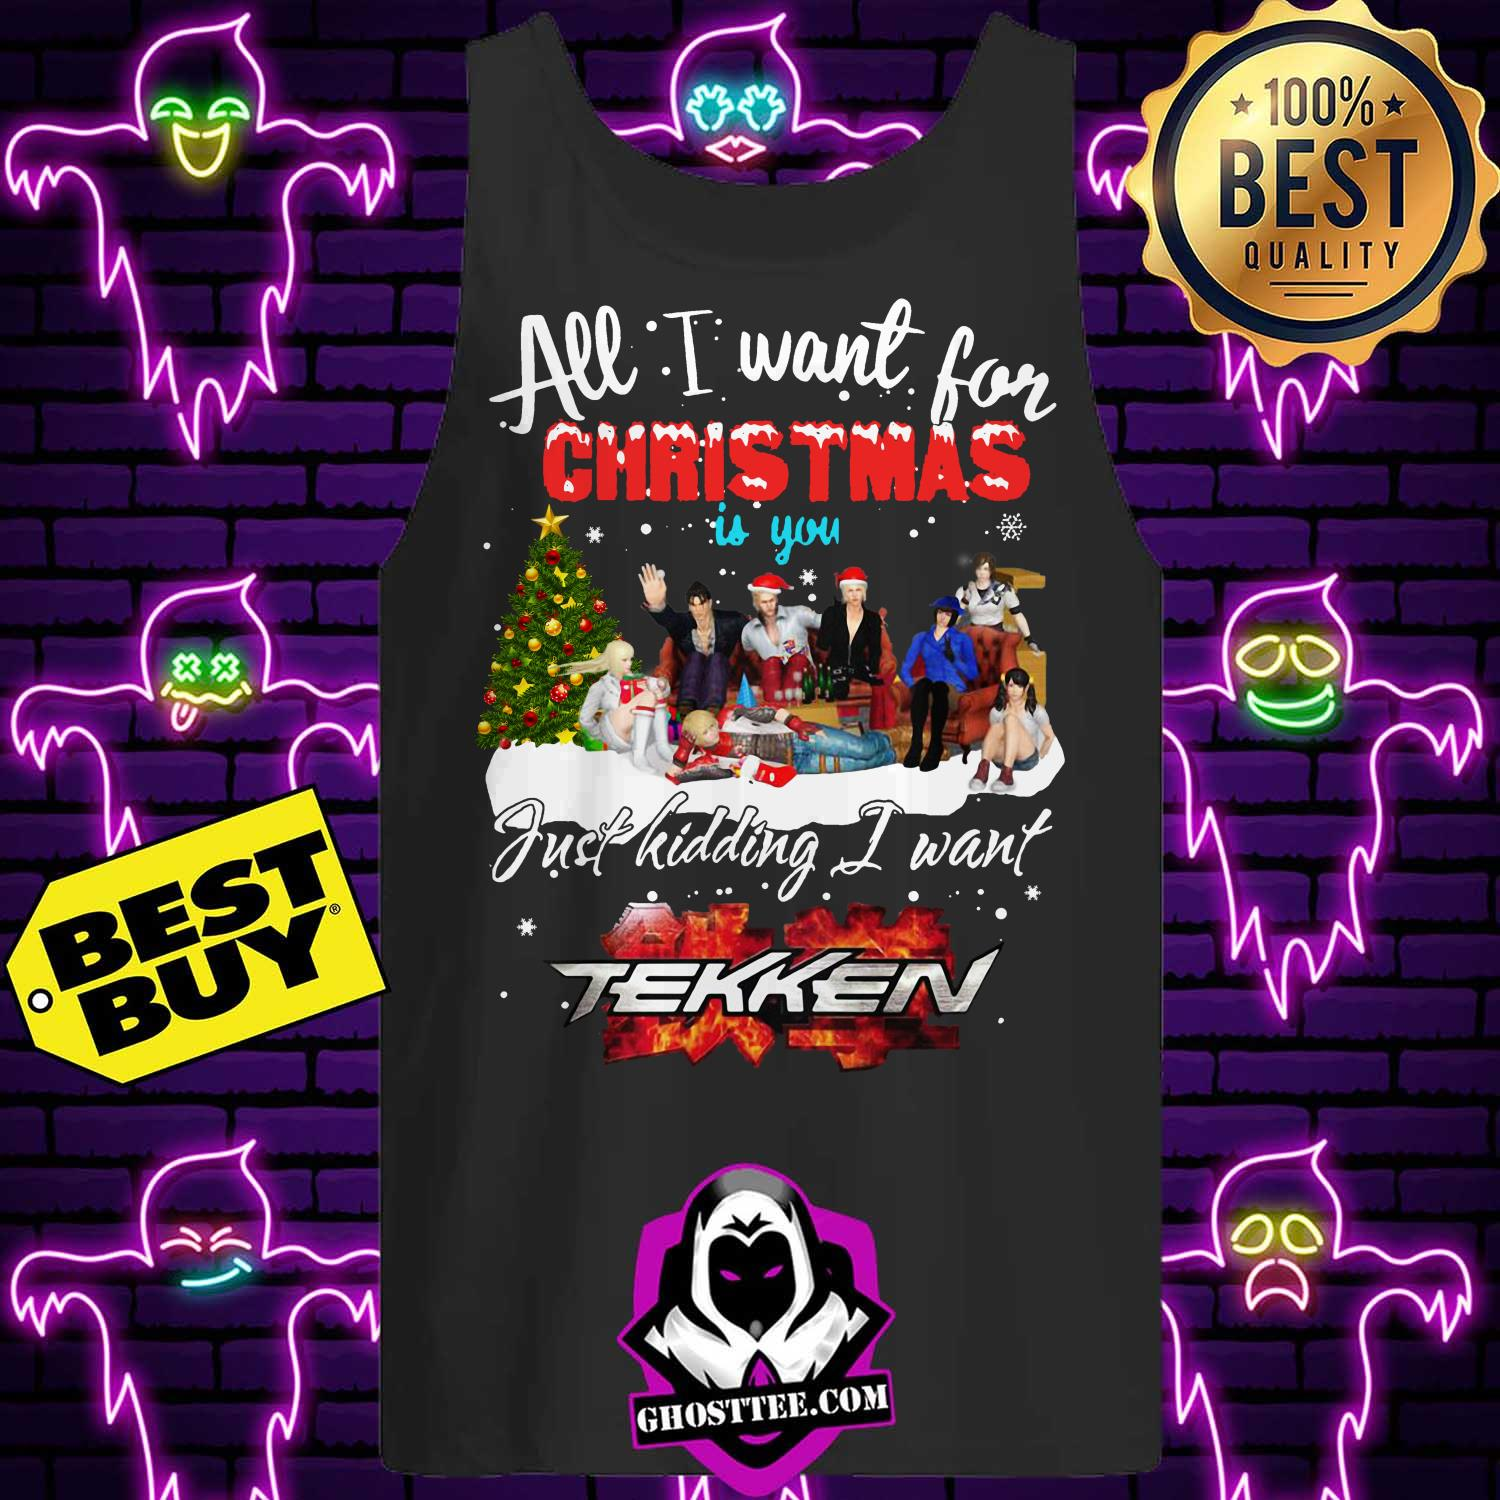 all i want for christmas is you just kidding i want tekken tank top - All I want for Christmas is you just kidding I want Tekken shirt